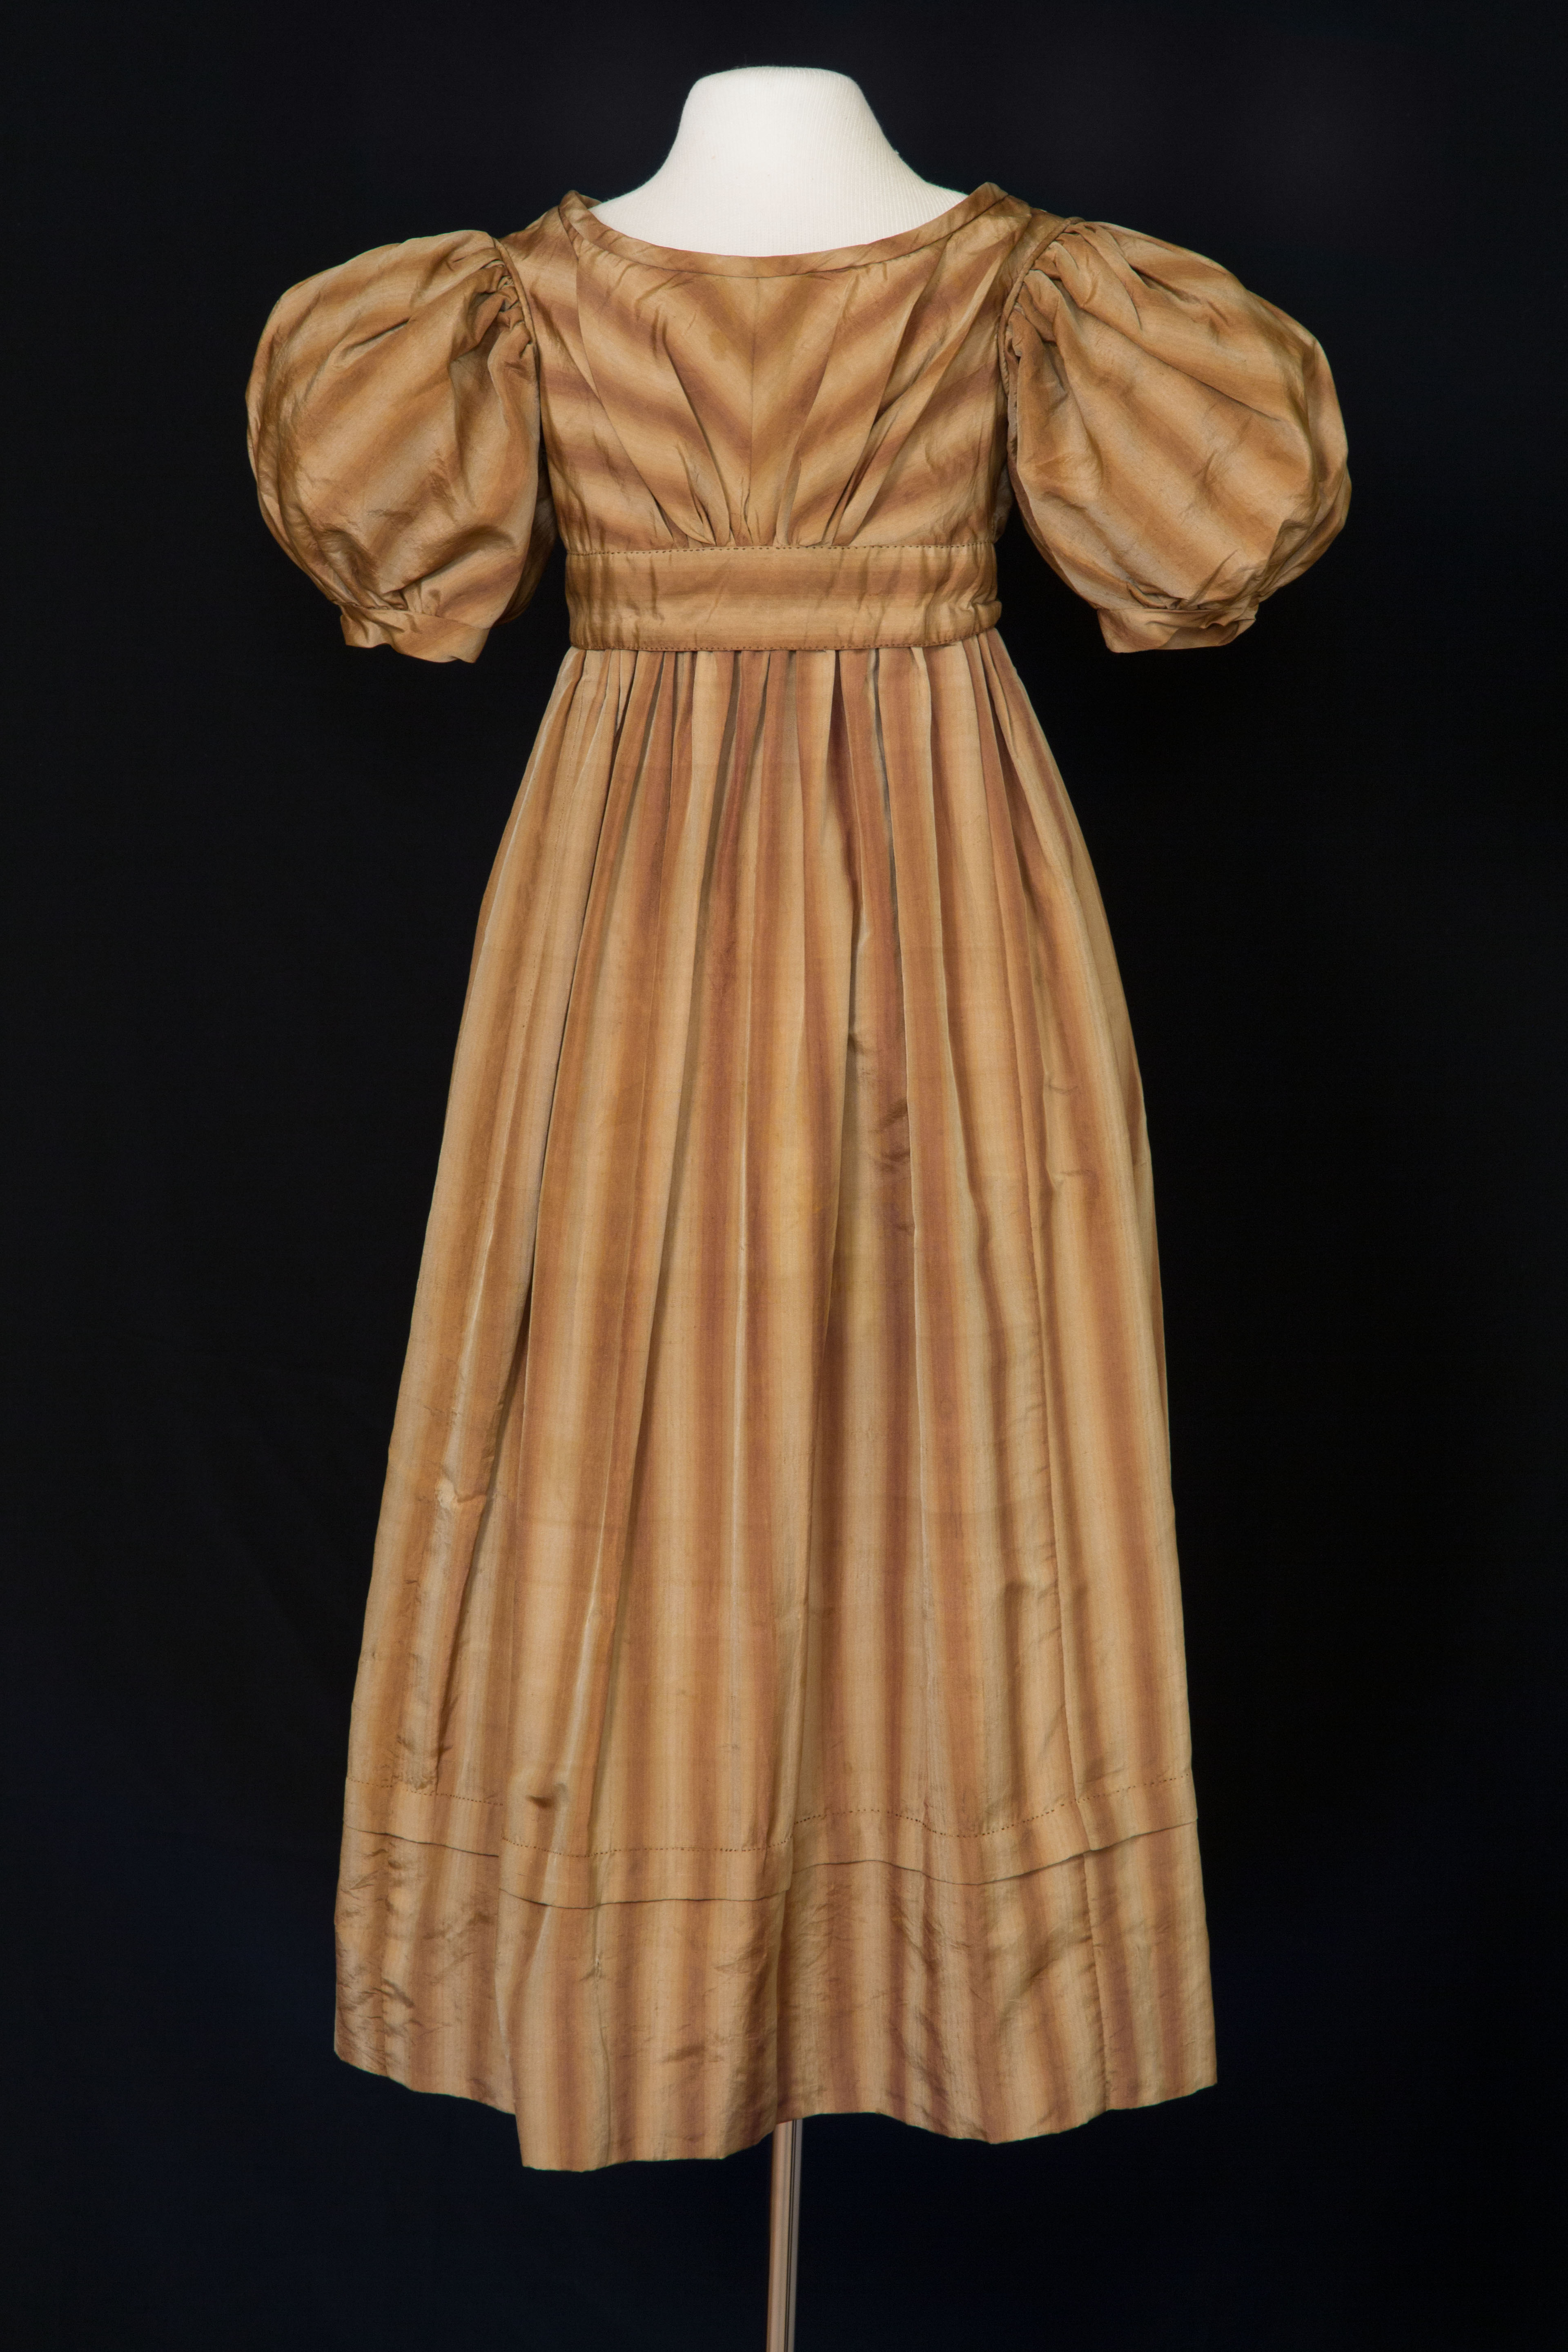 """Opening Night Party! """"History in the Stitches: Framingham Fashion through the Centuries"""" @ Edgell Memorial Library 